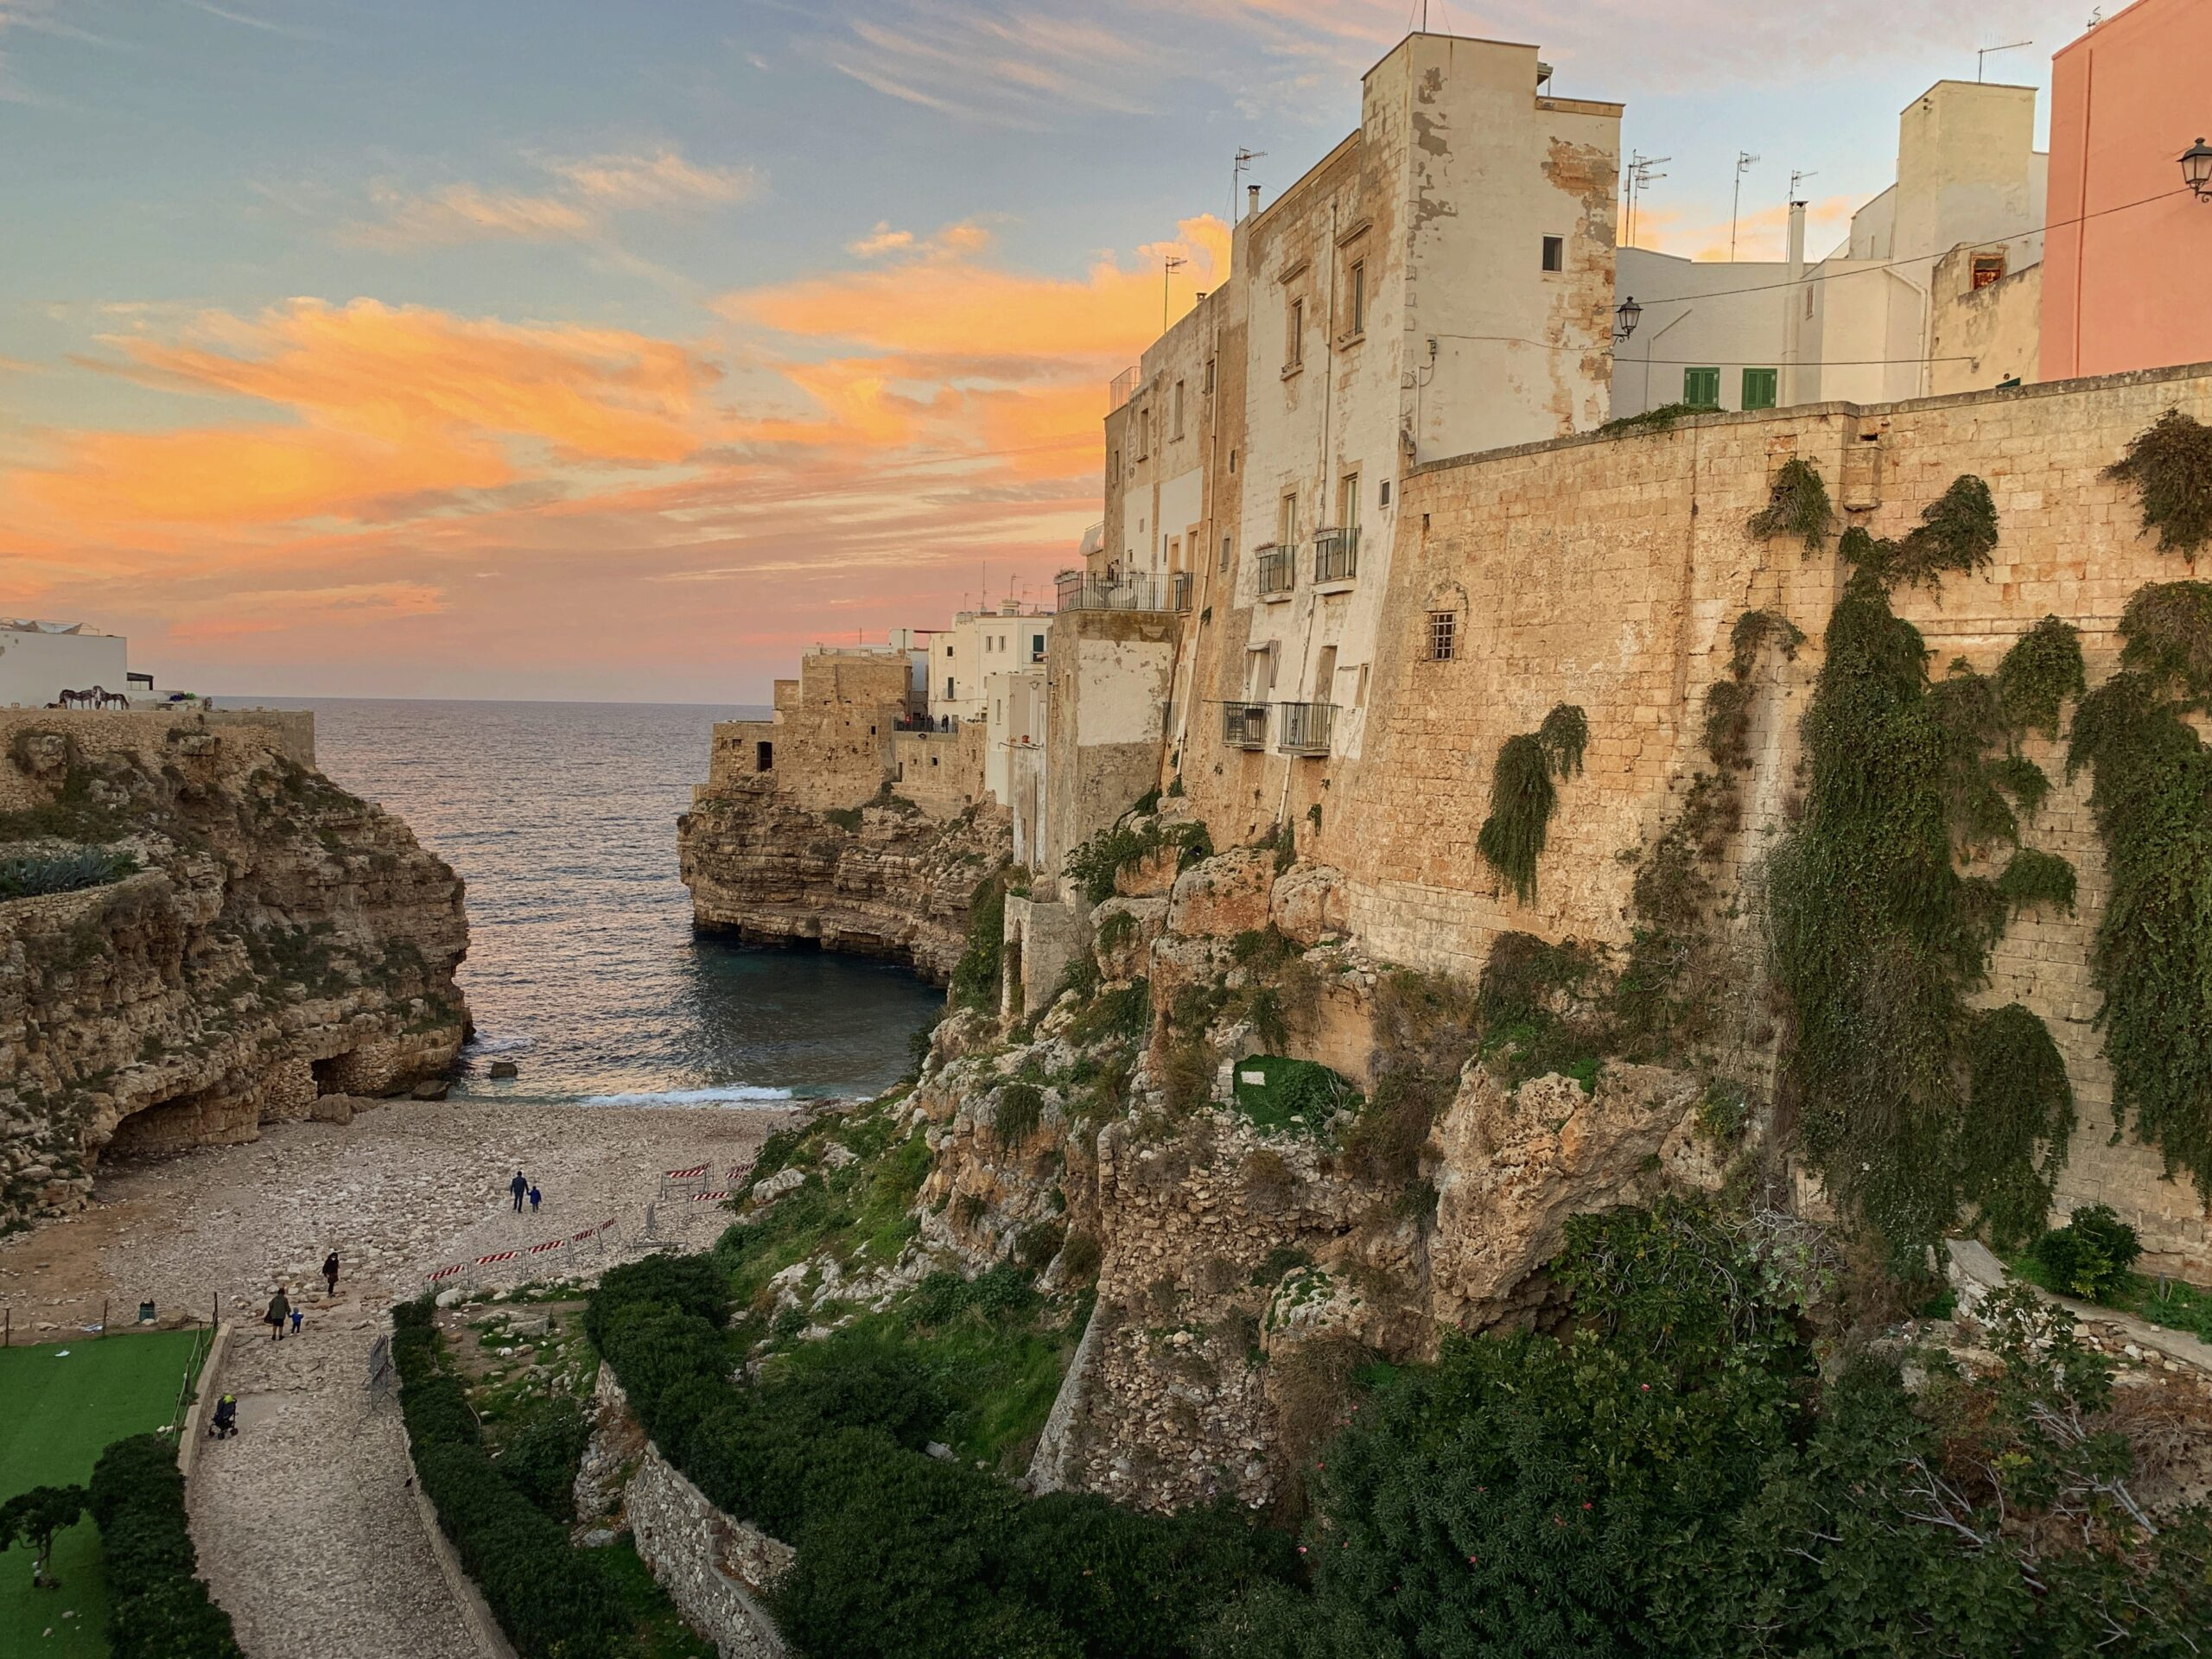 The Big Gay Podcast from Puglia - Polignano a Mare is one of Puglia's top destinations.